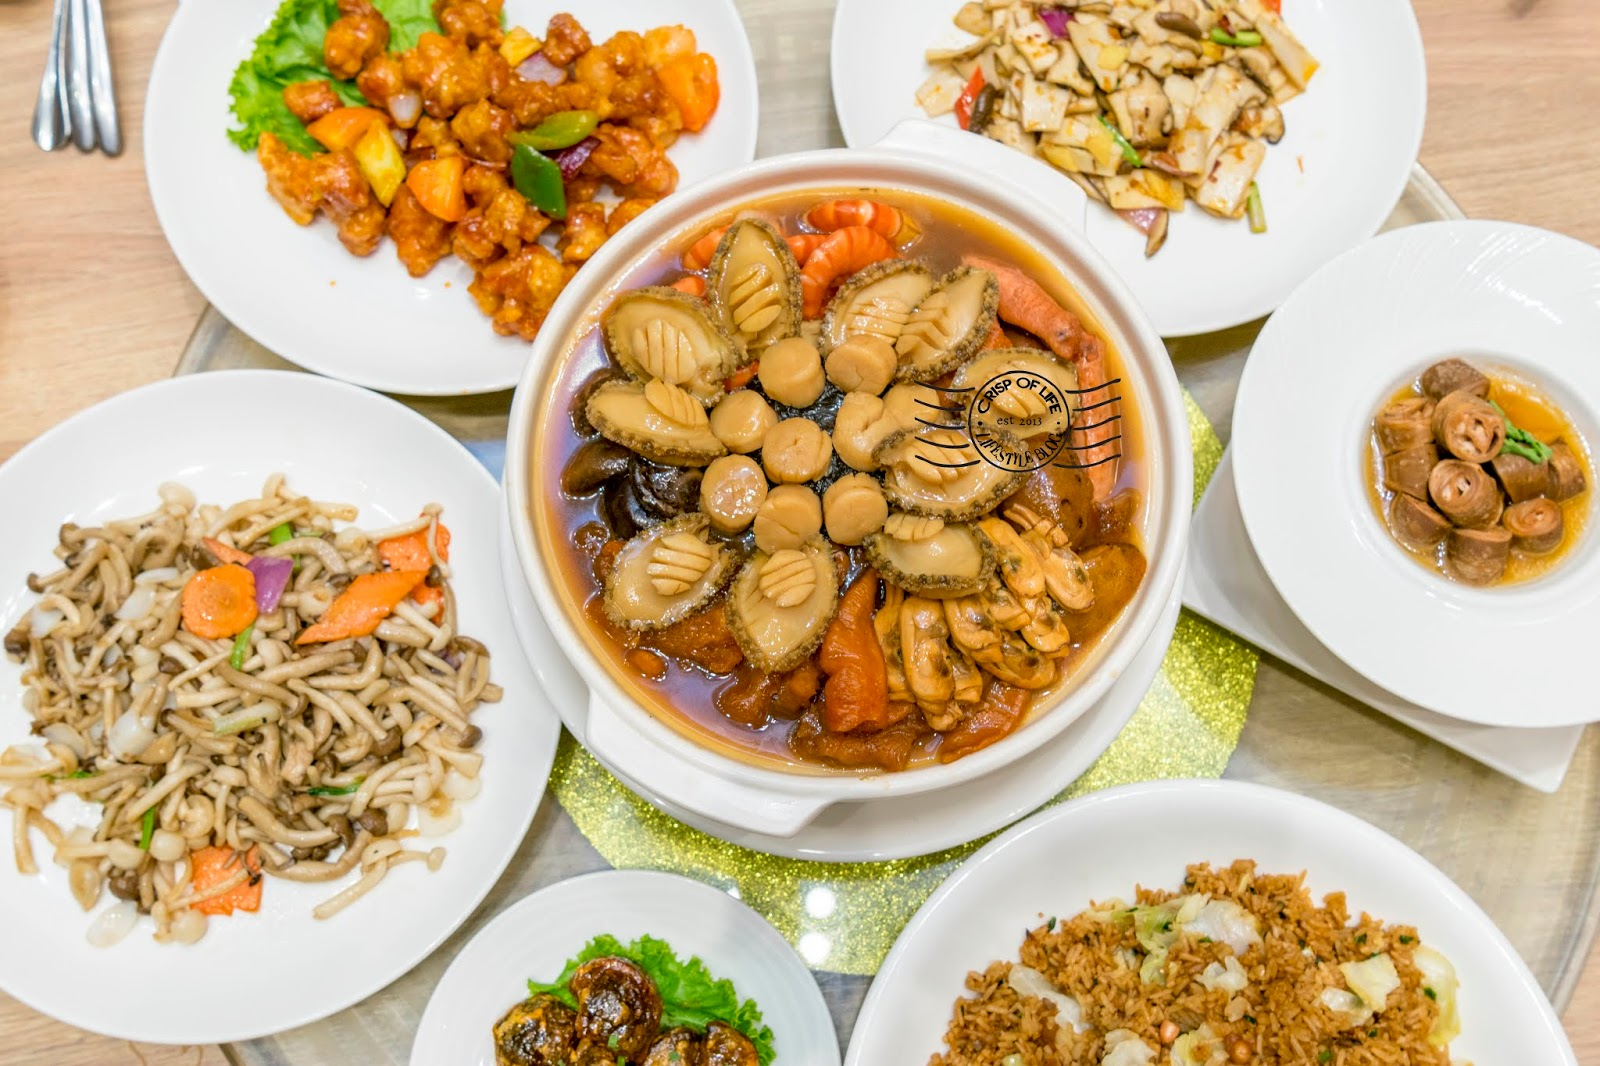 Celebrate a Memorable Chinese New Year with Poon Choi from PUTIEN Malaysia